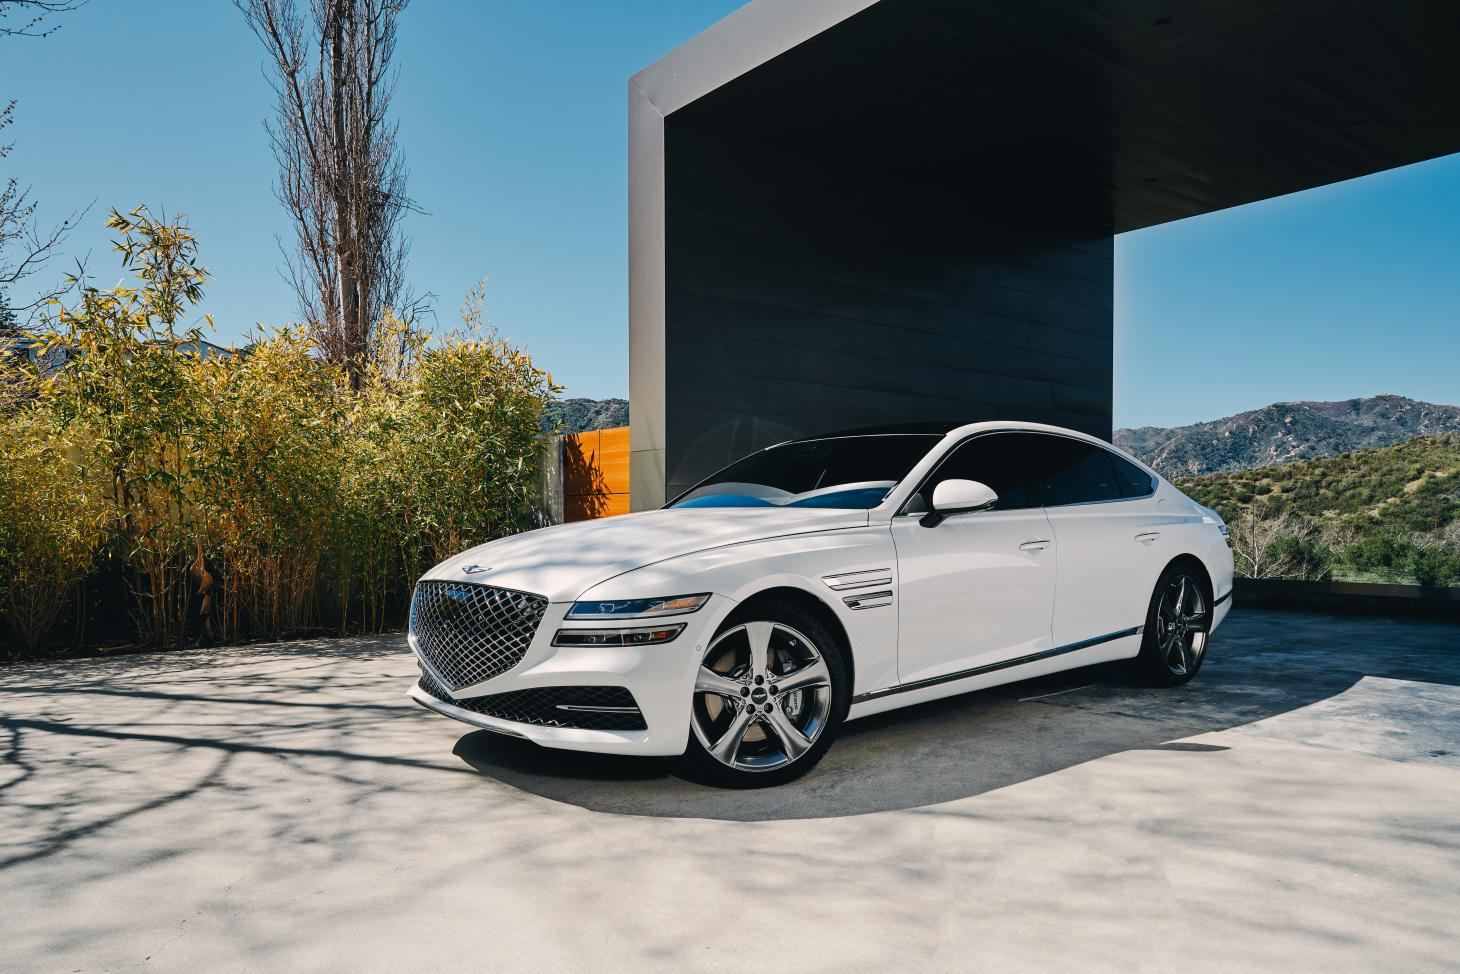 Genesis G80 exterior view with architeture in the background